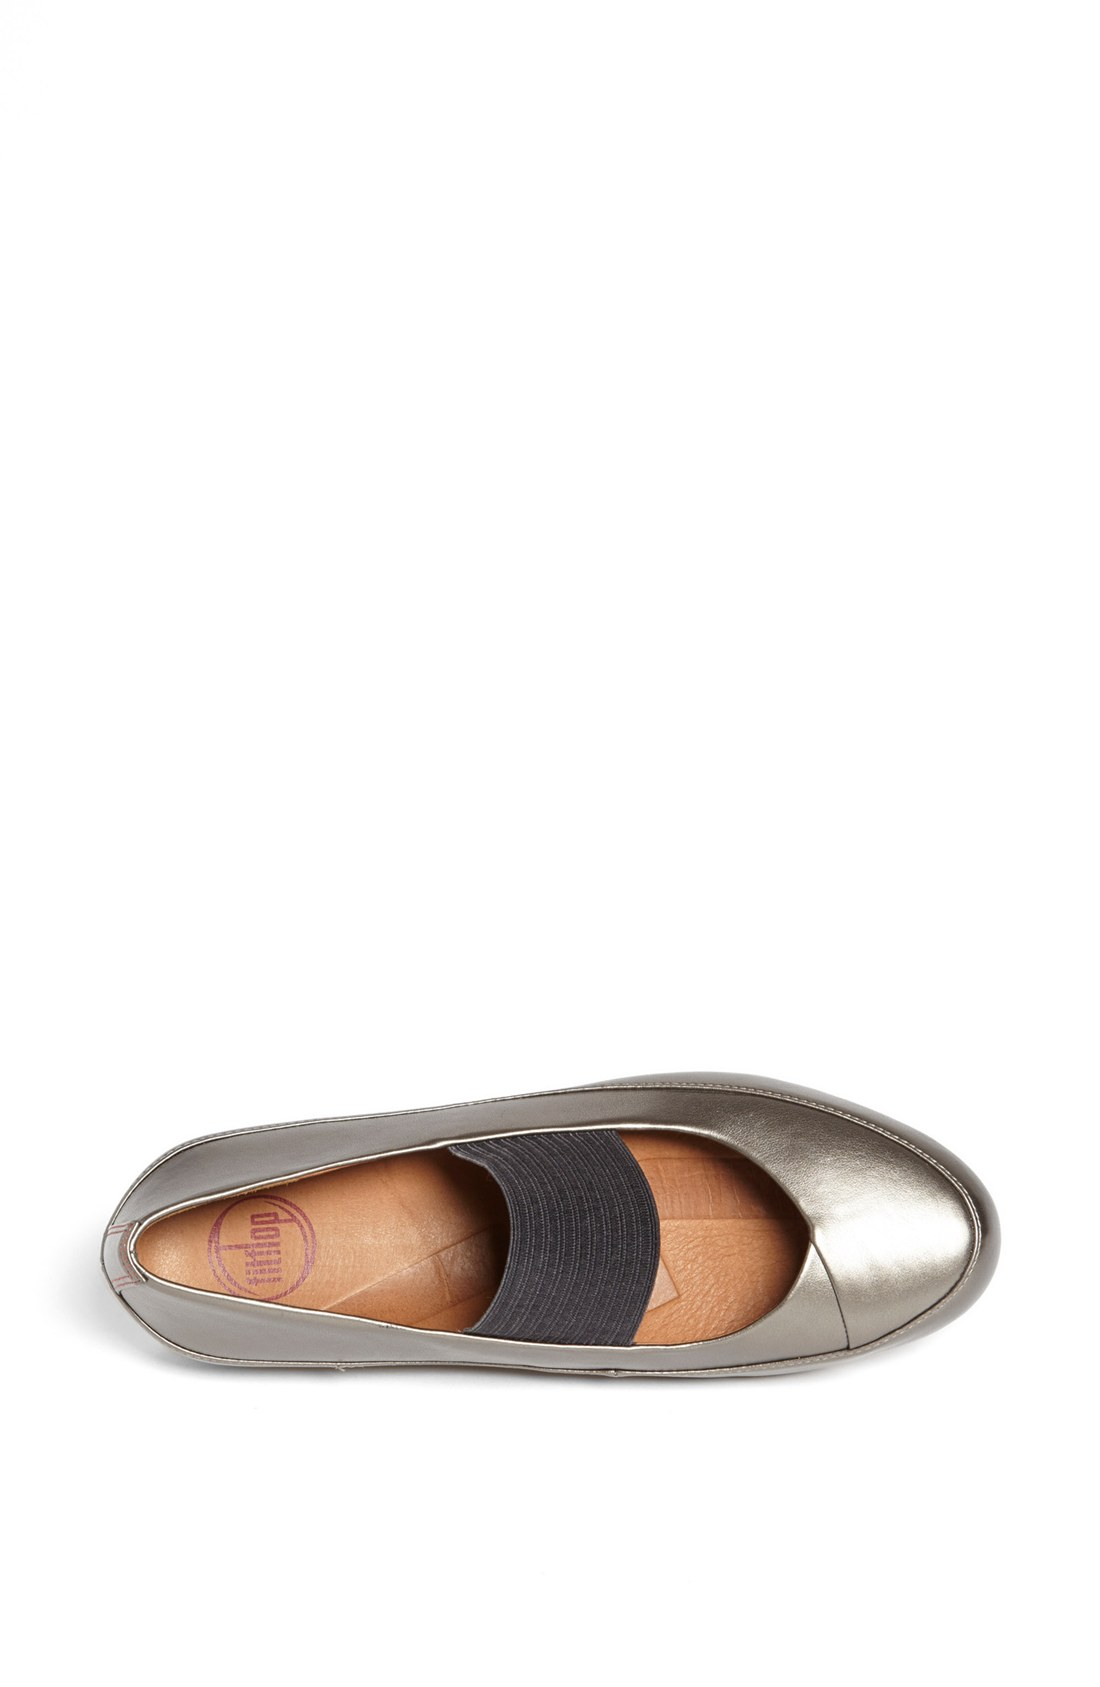 fitflop due mary jane pewter